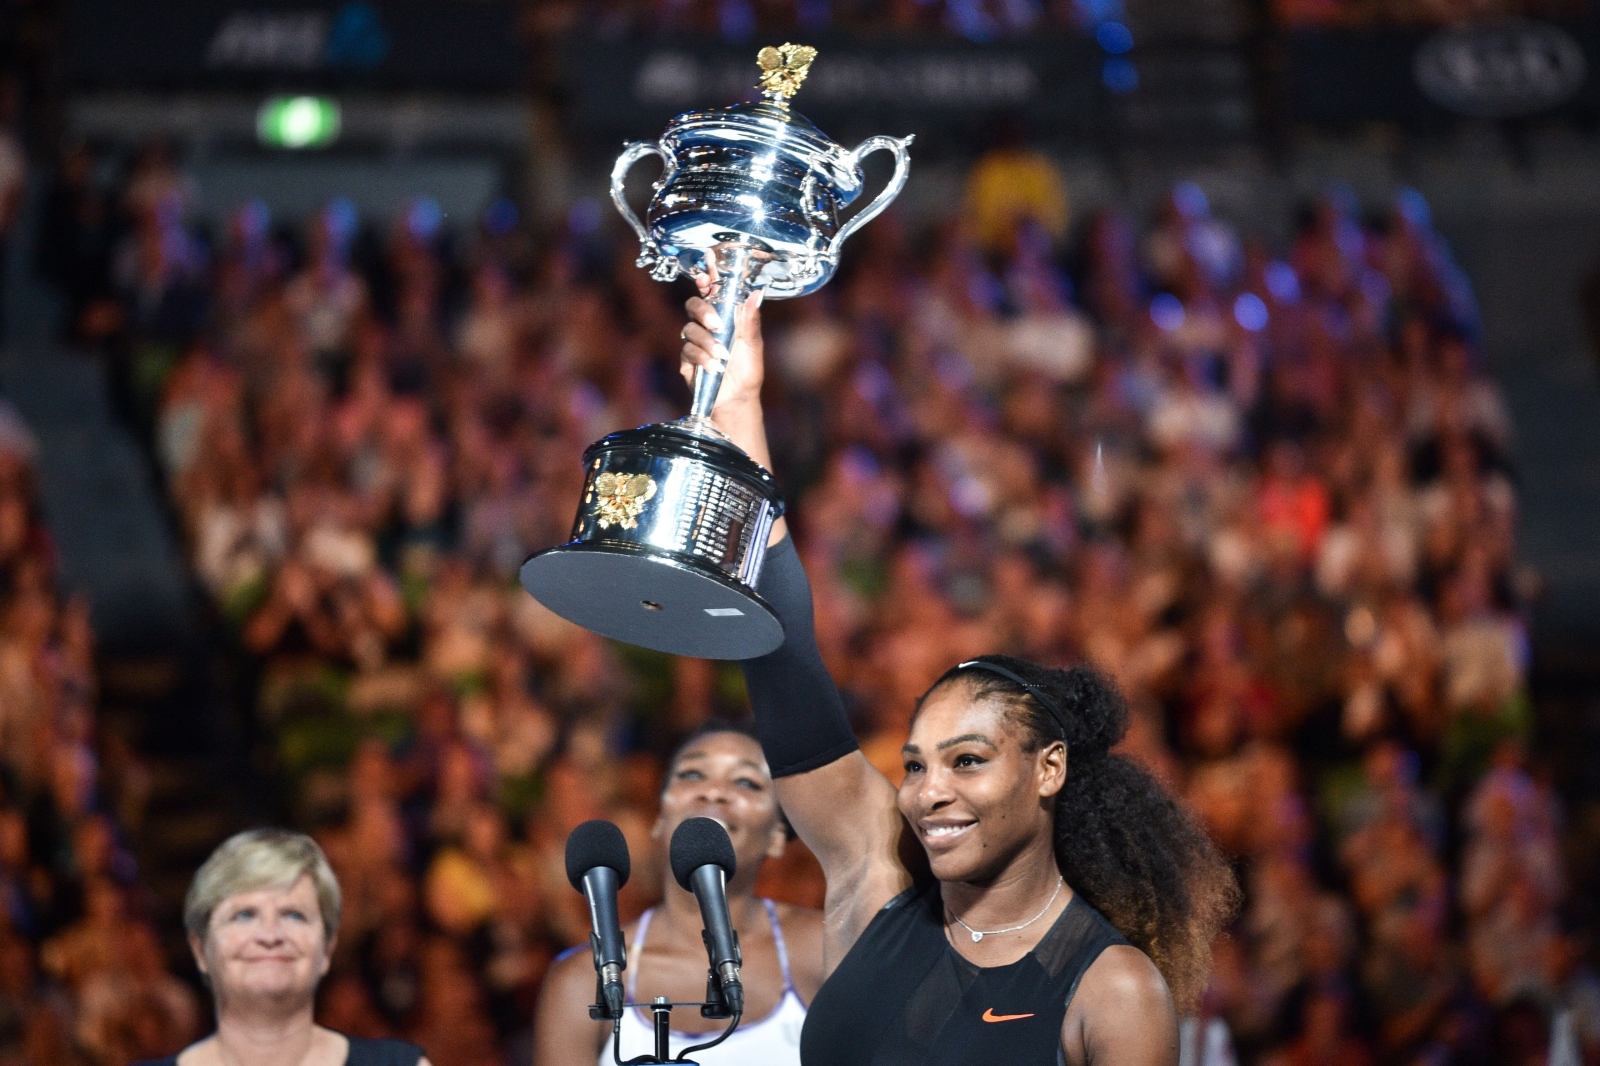 Williams: Who Is Serena Williams? Net Worth And Facts About The